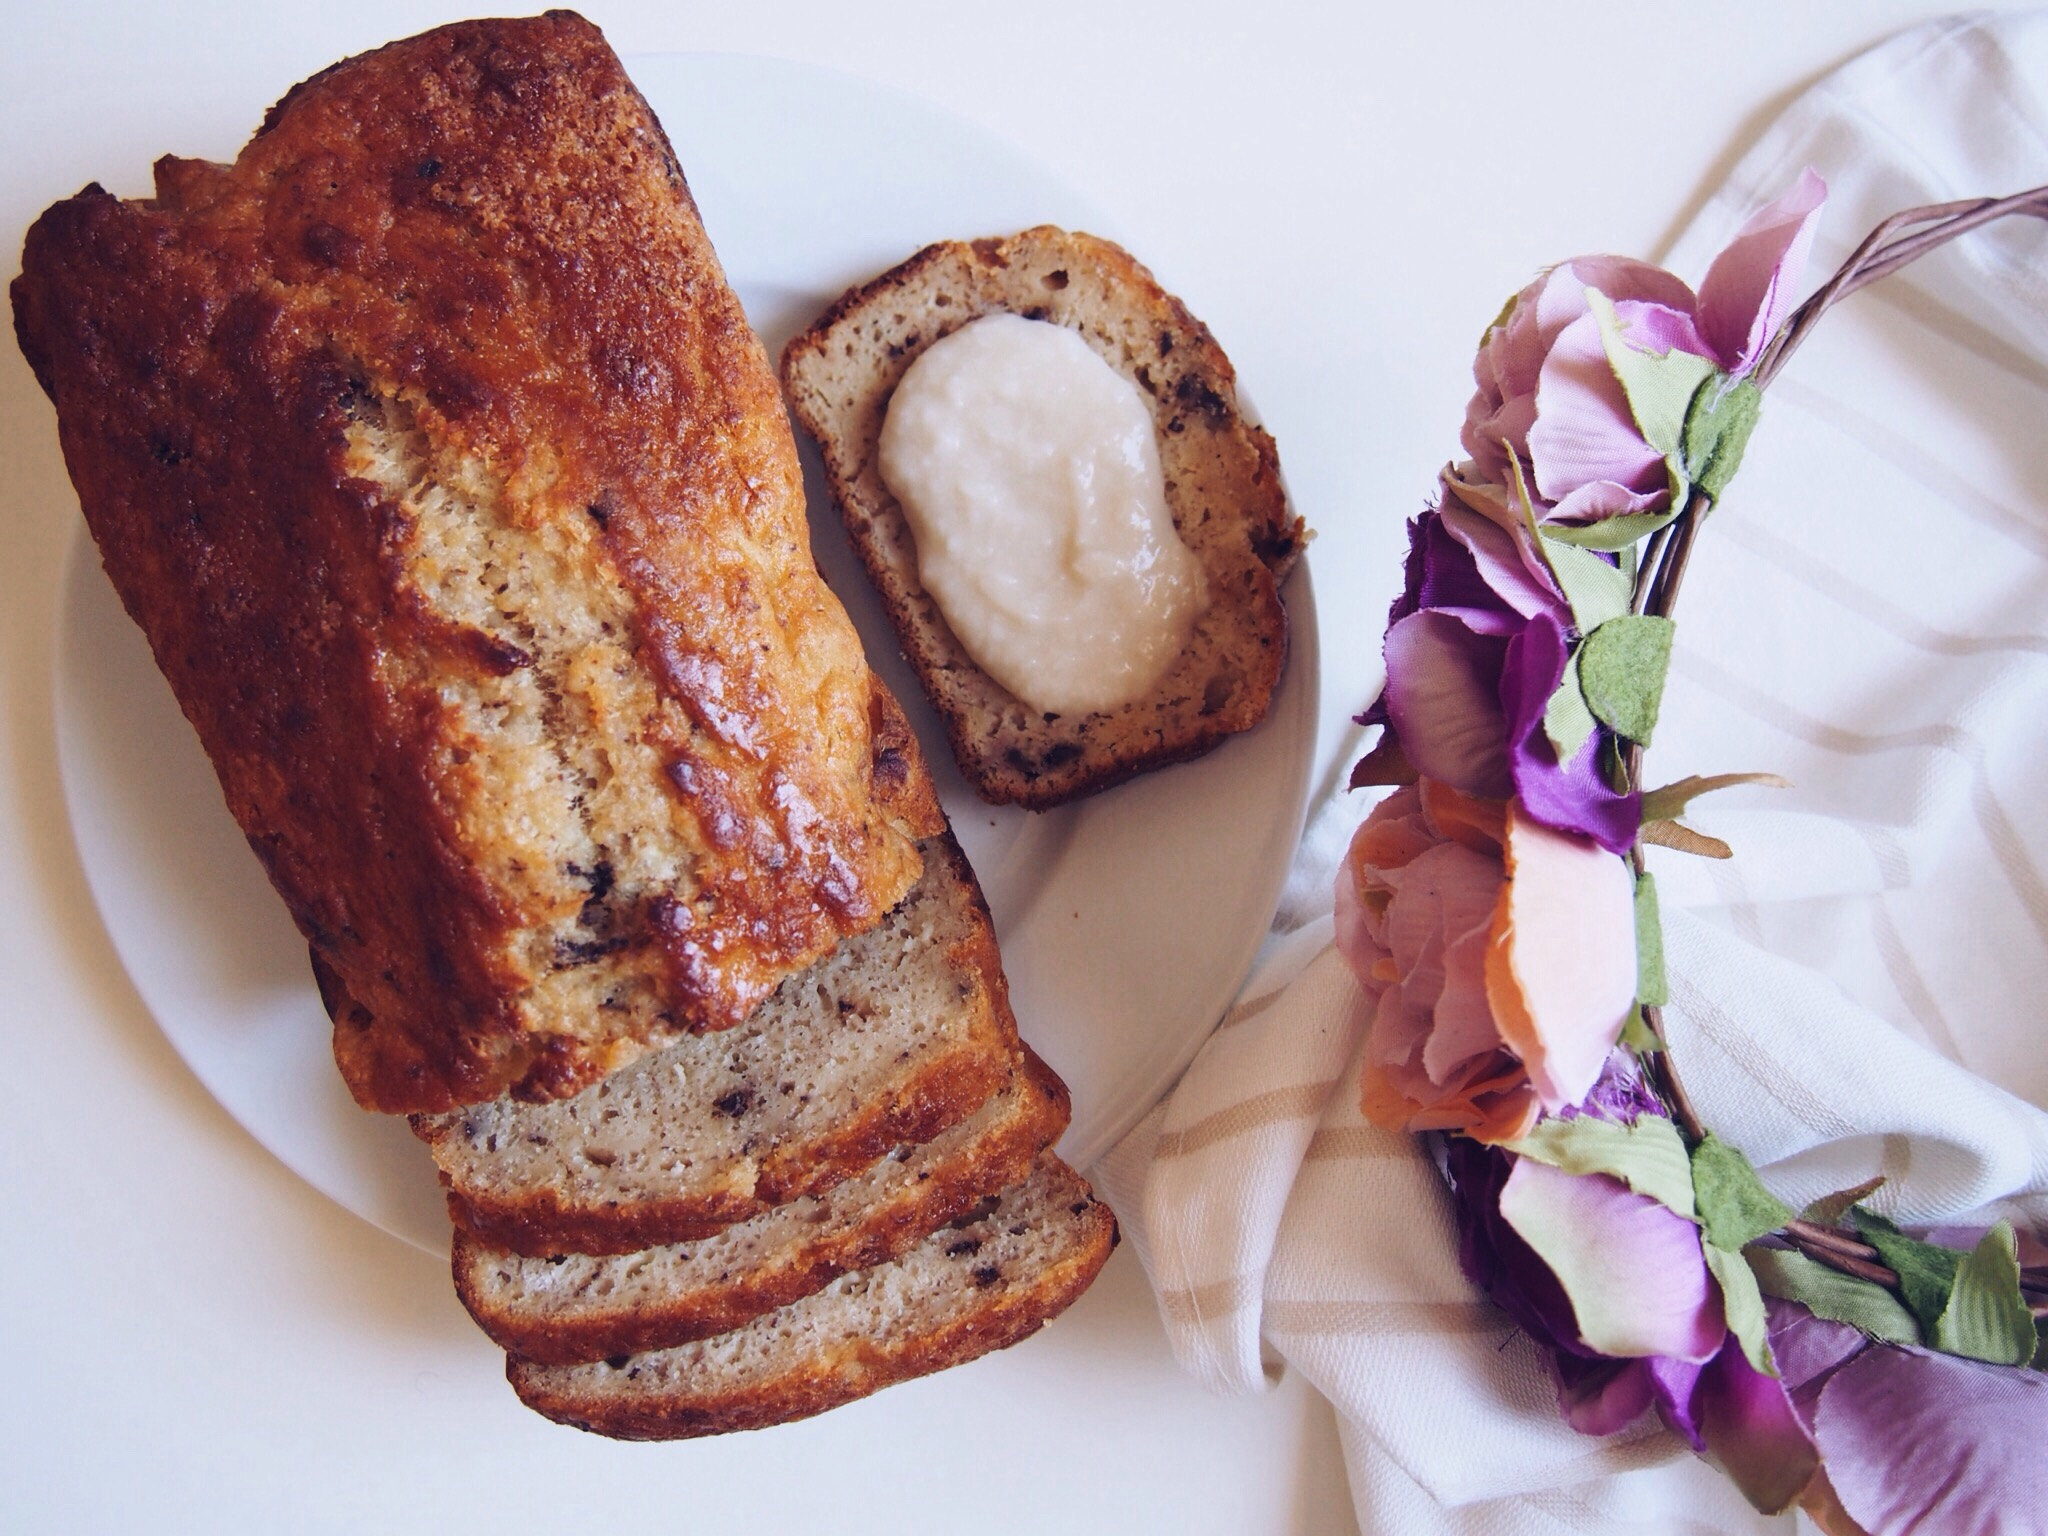 brunch_Green_healthy_muffins_banana bread_smoothie_glutenfree_sans gluten